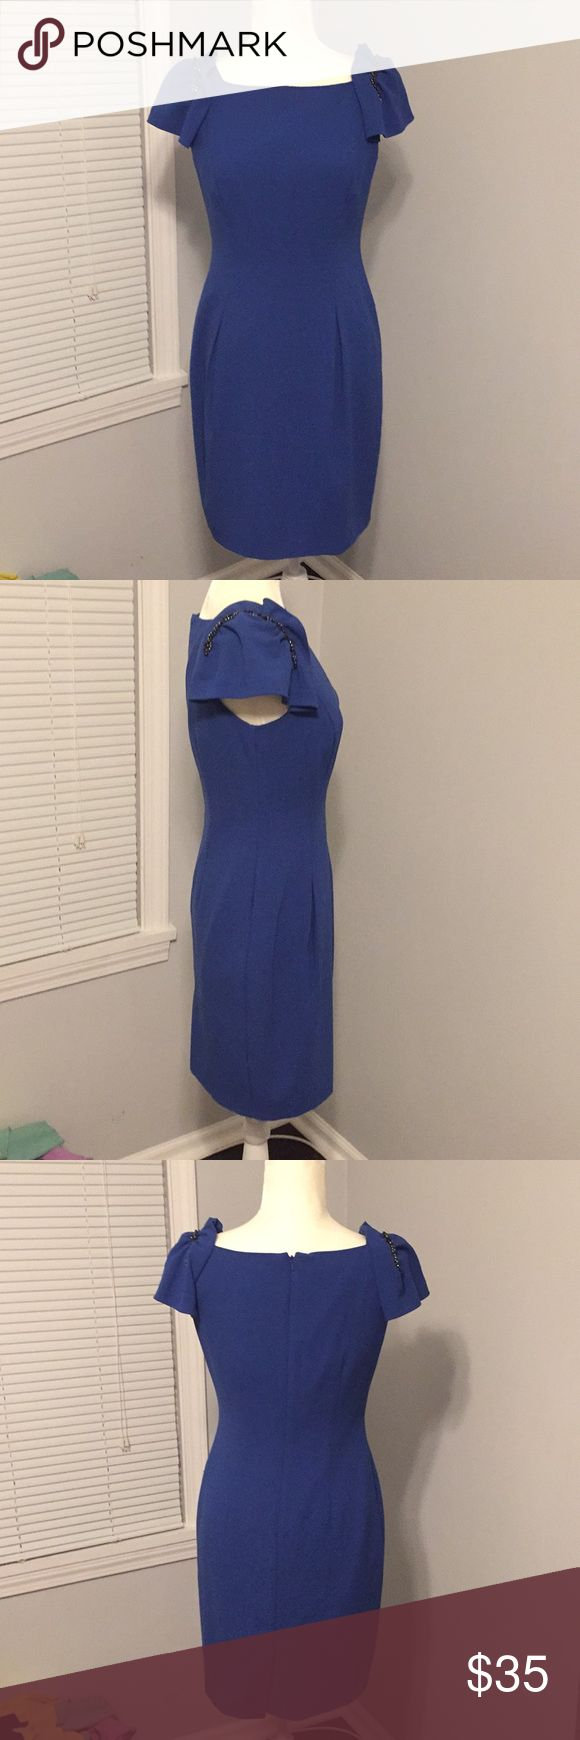 Donna Ricco embellished sleeve dress Timeless chic n classic. Bold blue rear zip embellished sleeve lined dress. Great for many occasions. Some beads have fallen off sleeve as shown in picture Donna Ricco Dresses